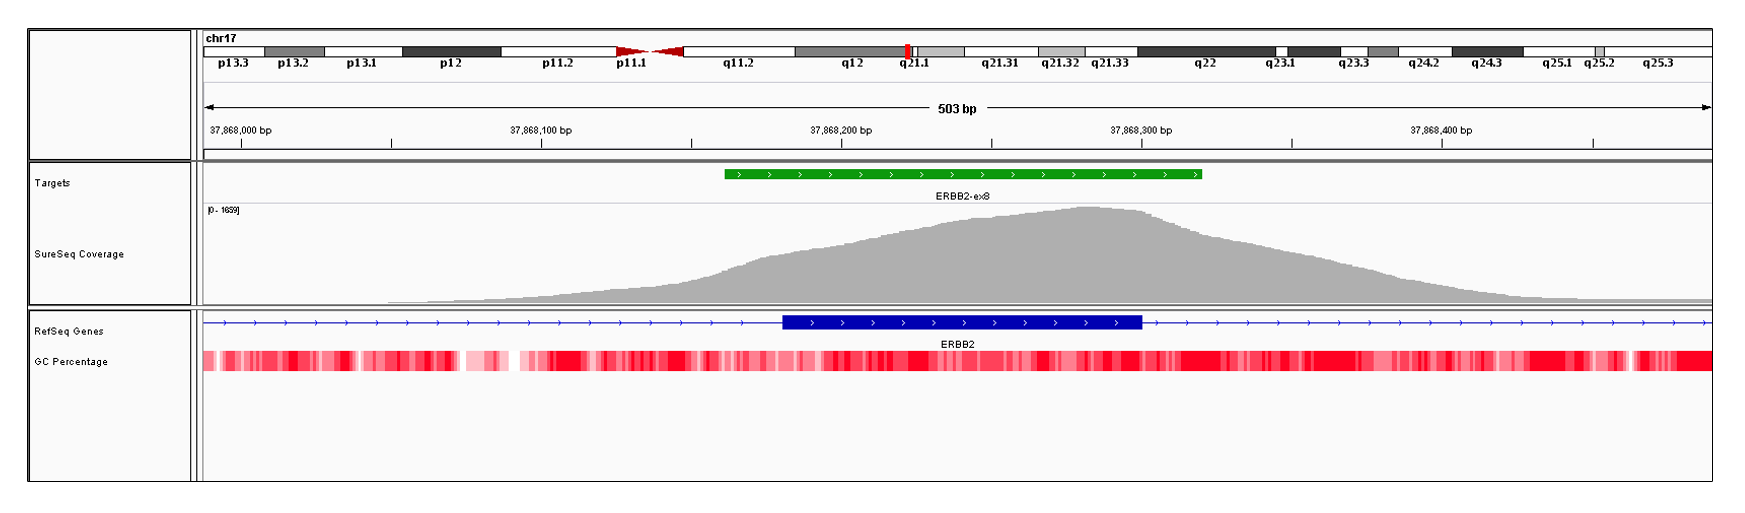 ERBB2 Exon 8 (hg19 chr17:37868181-37868300). Depth of coverage per base (grey). Targeted region (green). Gene coding region as defined by RefSeq (blue). GC percentage (red). Image